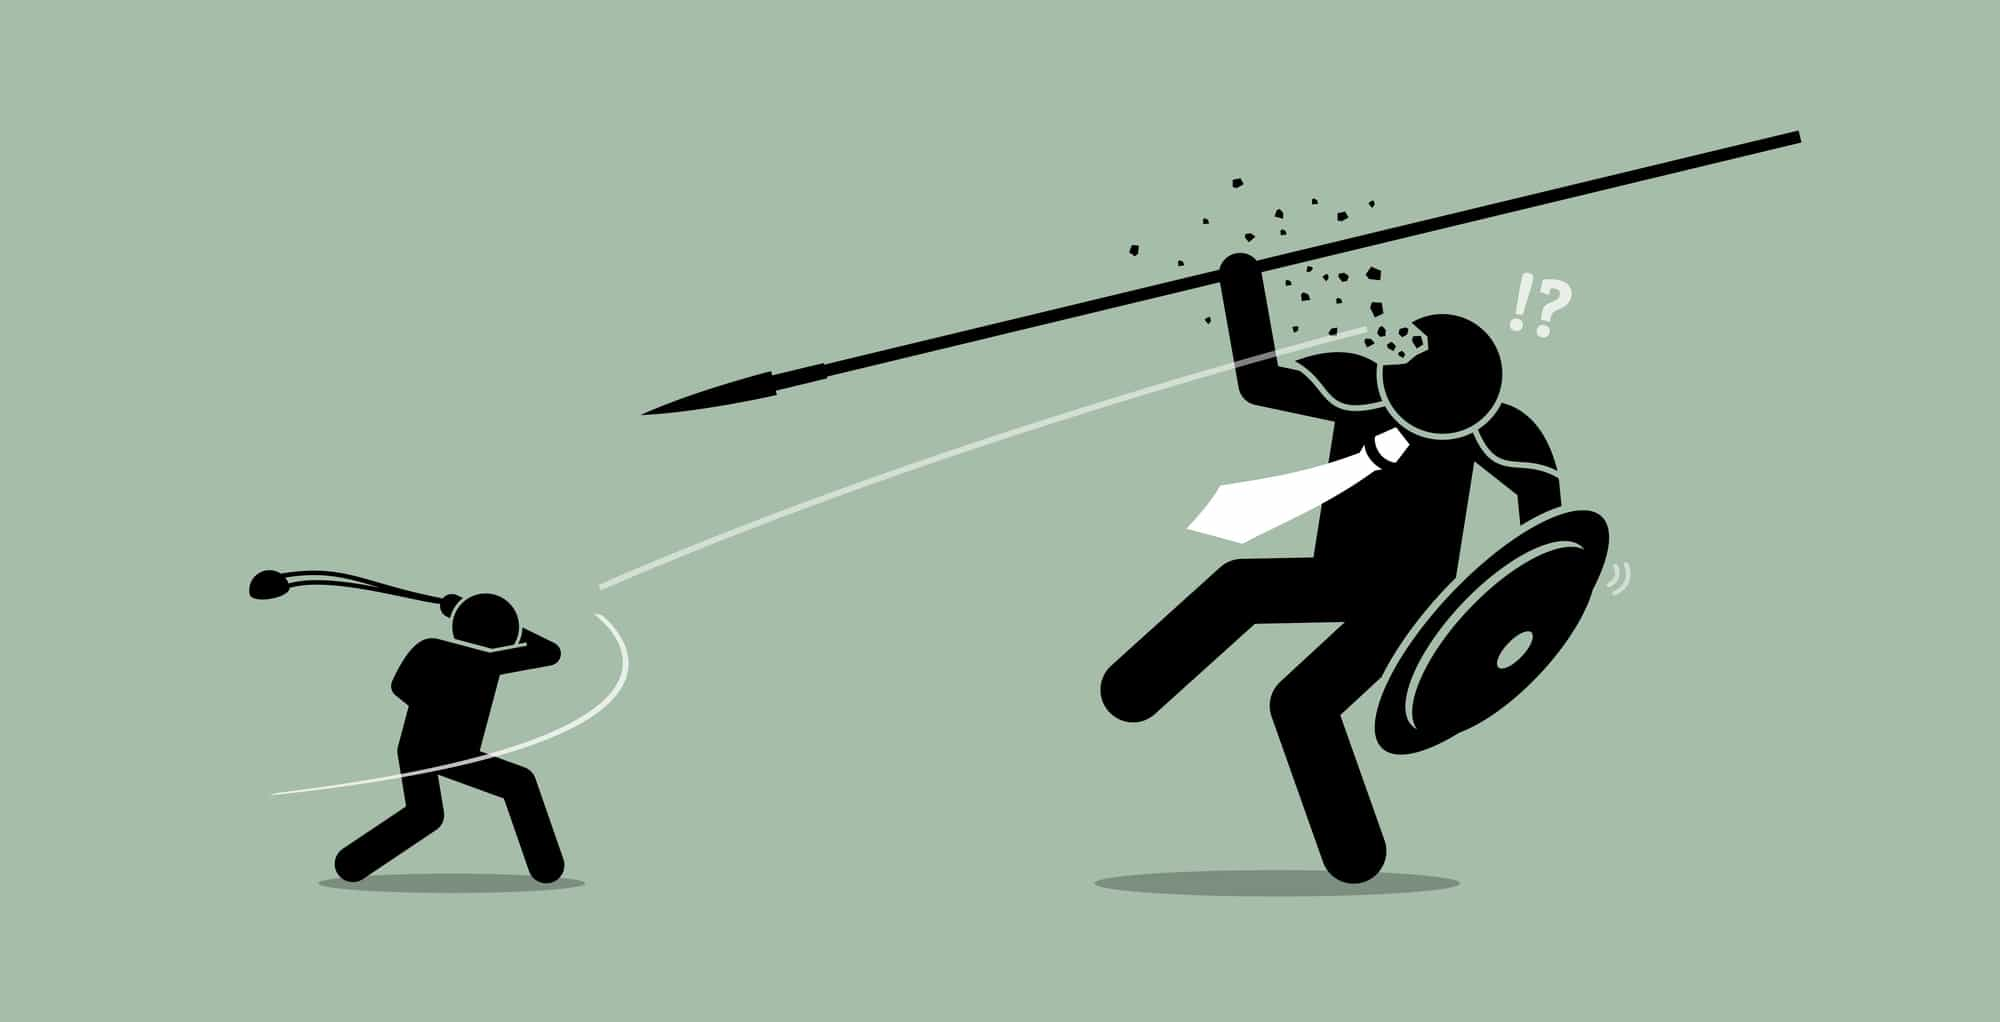 David v. Goliath. When you work with us, you will have the tools and confidence to compete, and win, against any competitor.